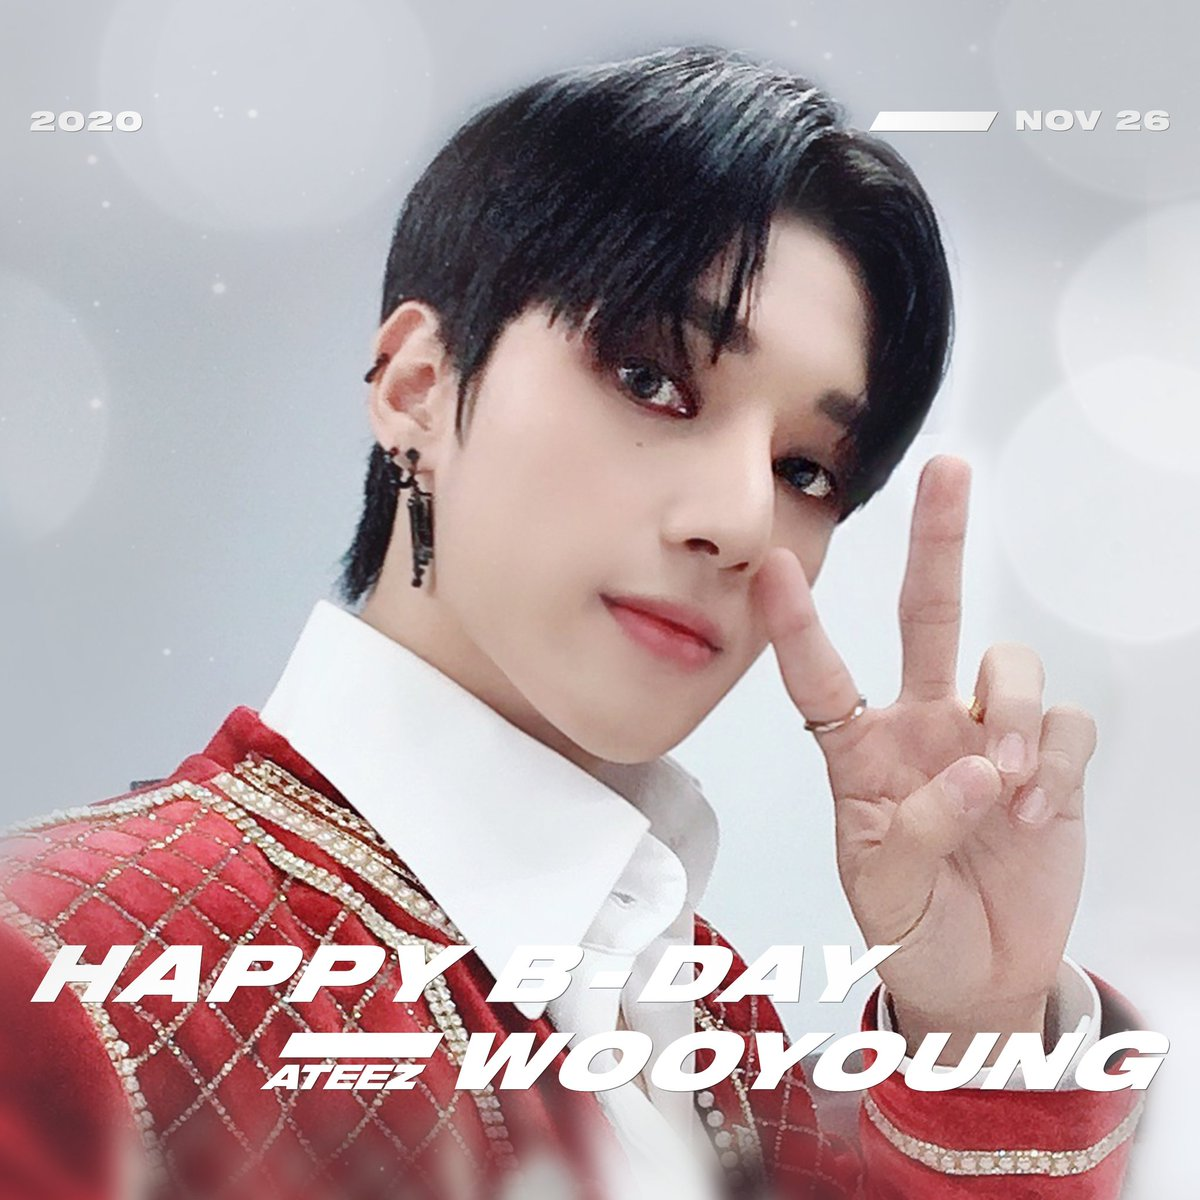 ♡🎉 2020.11.26 HAPPY BIRTHDAY WOOYOUNG 🎉♡  #HappyBirthdayWooYoung #HappyWOOYOUNGDay  #ATEEZ #에이티즈 #우영 #WOOYOUNG